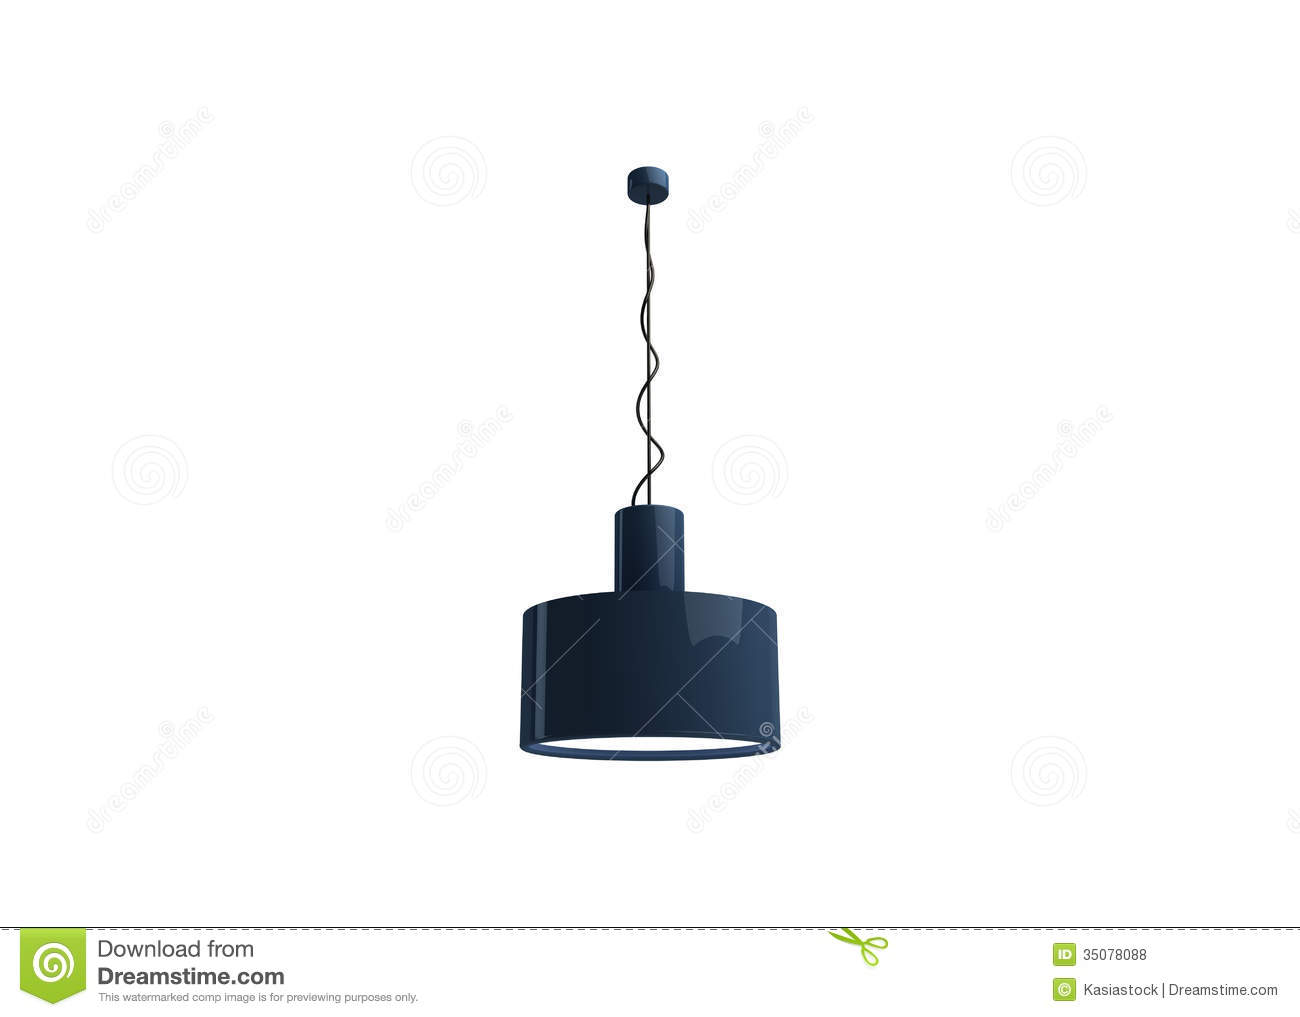 Ceiling lighting clipart #17